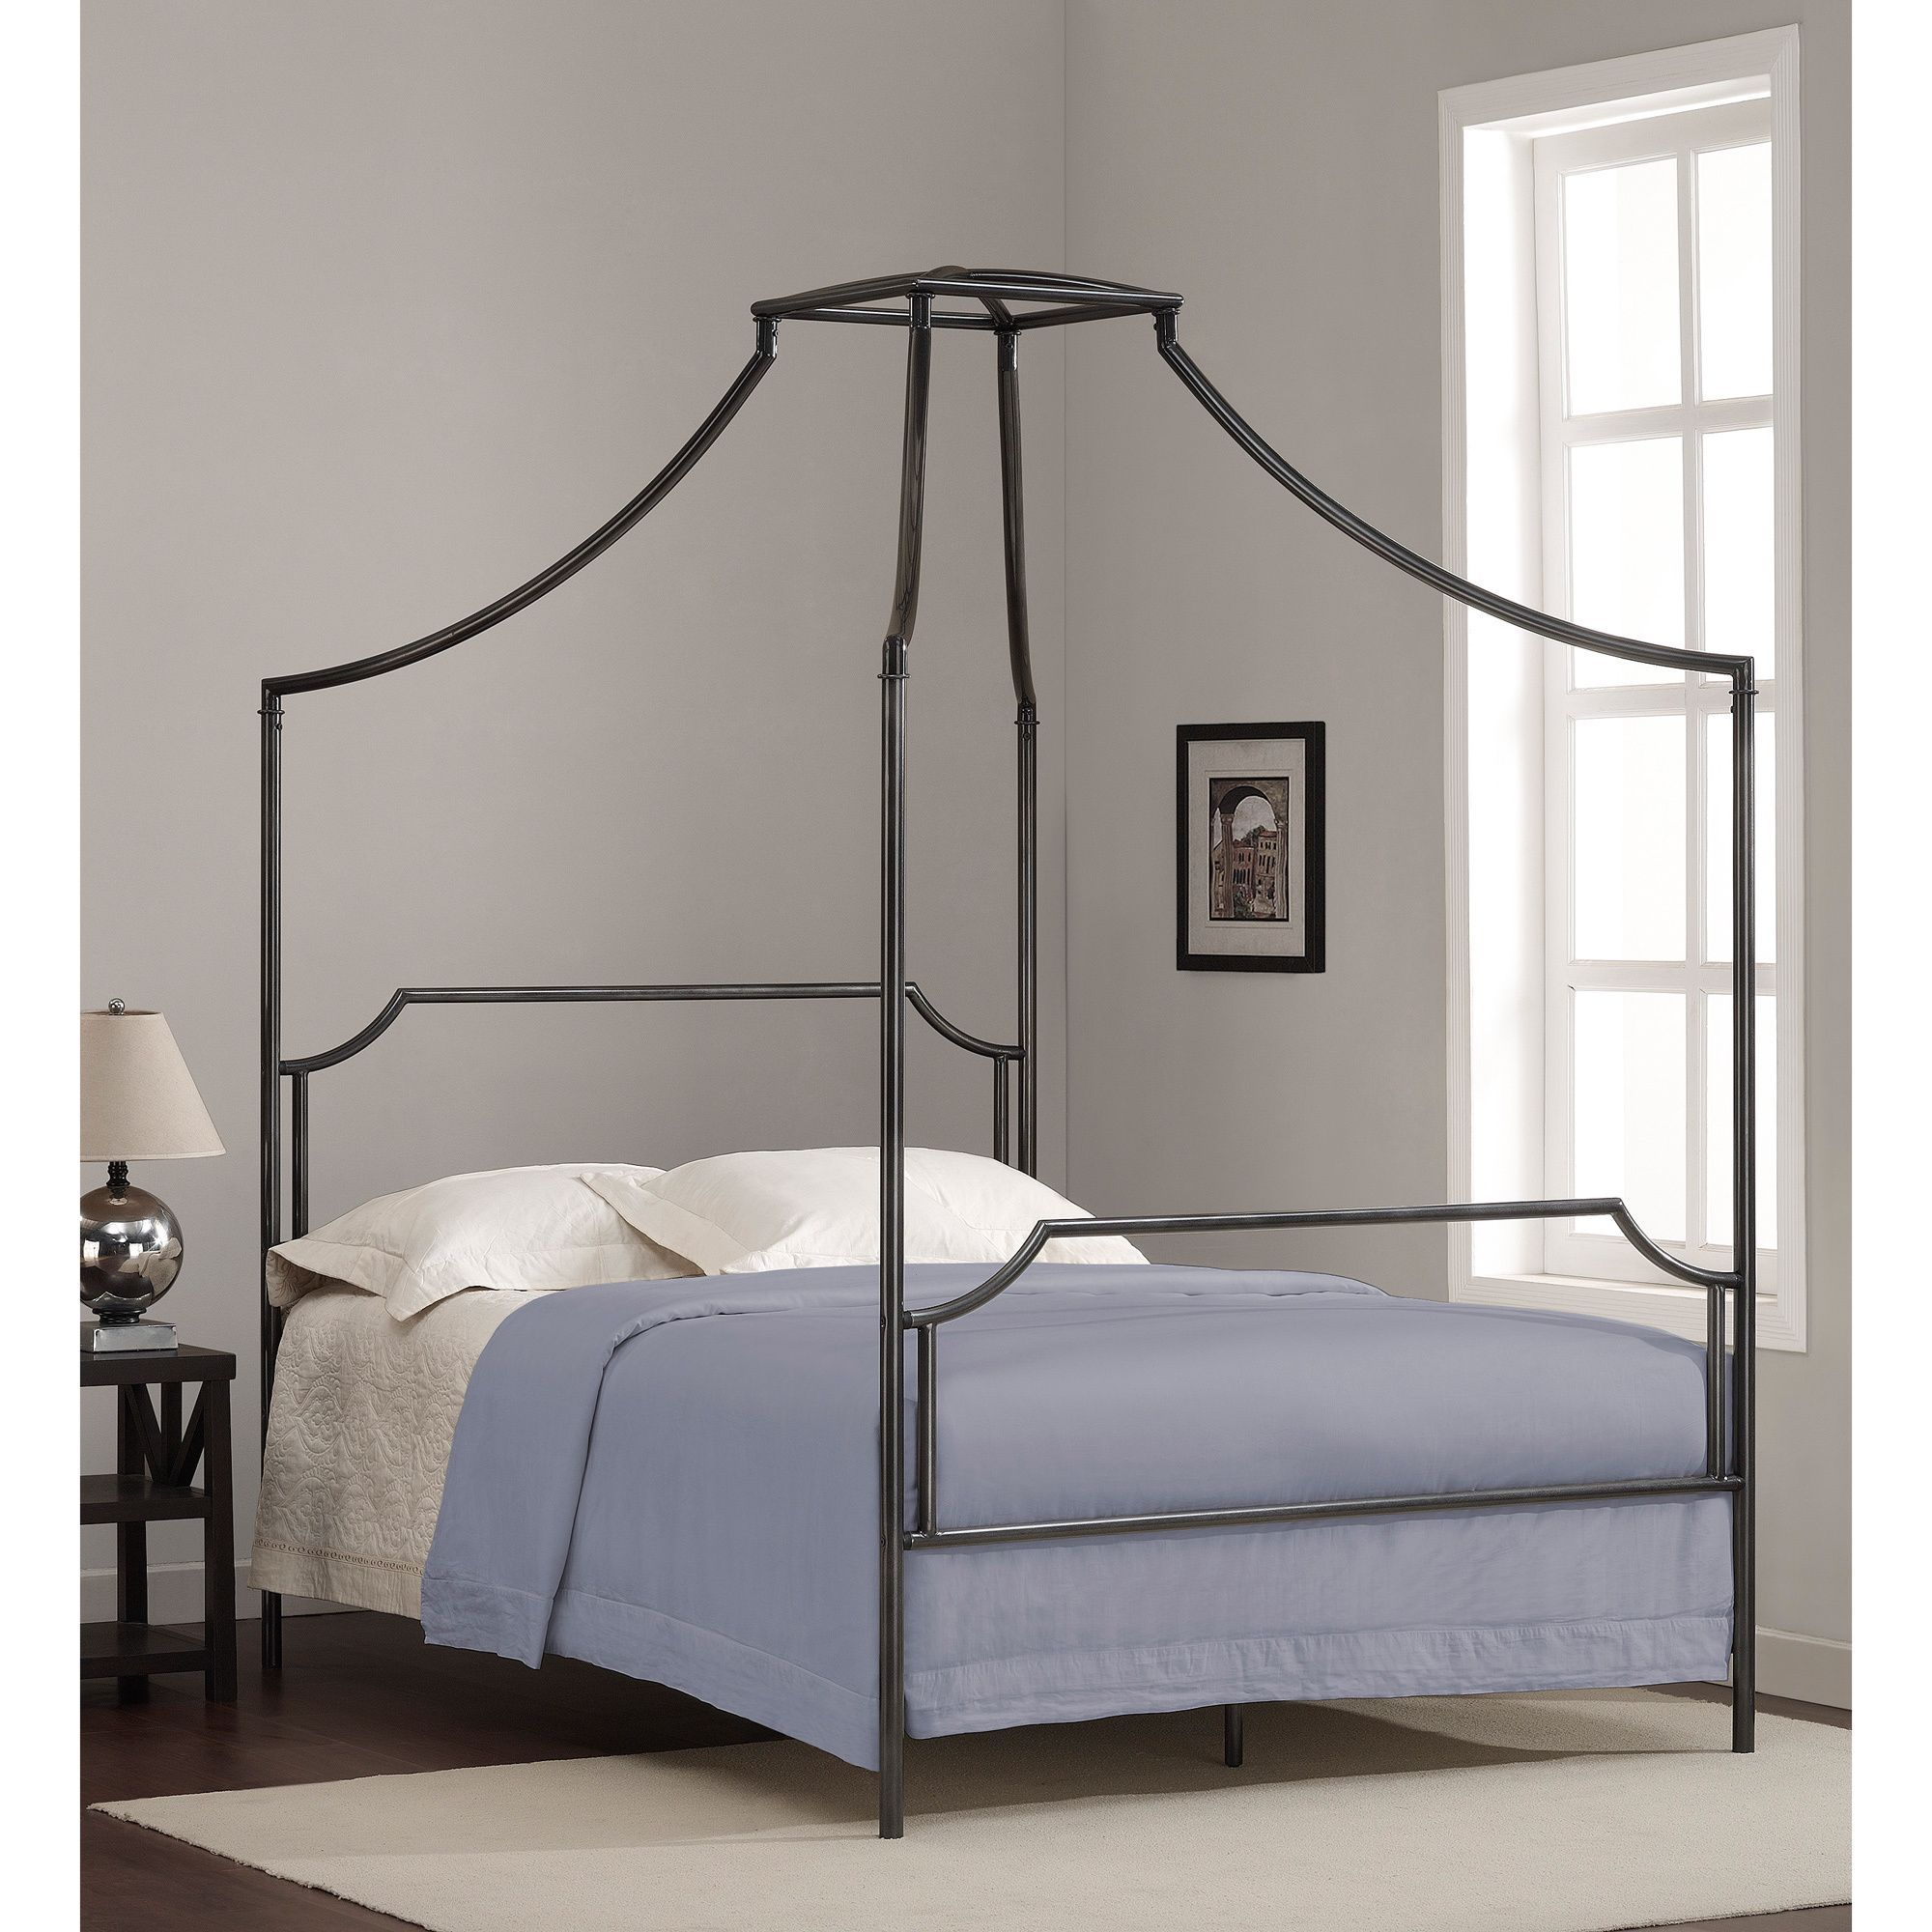 Bailey Charcoal Full-size Canopy Bed Frame | House stuff | Pinterest